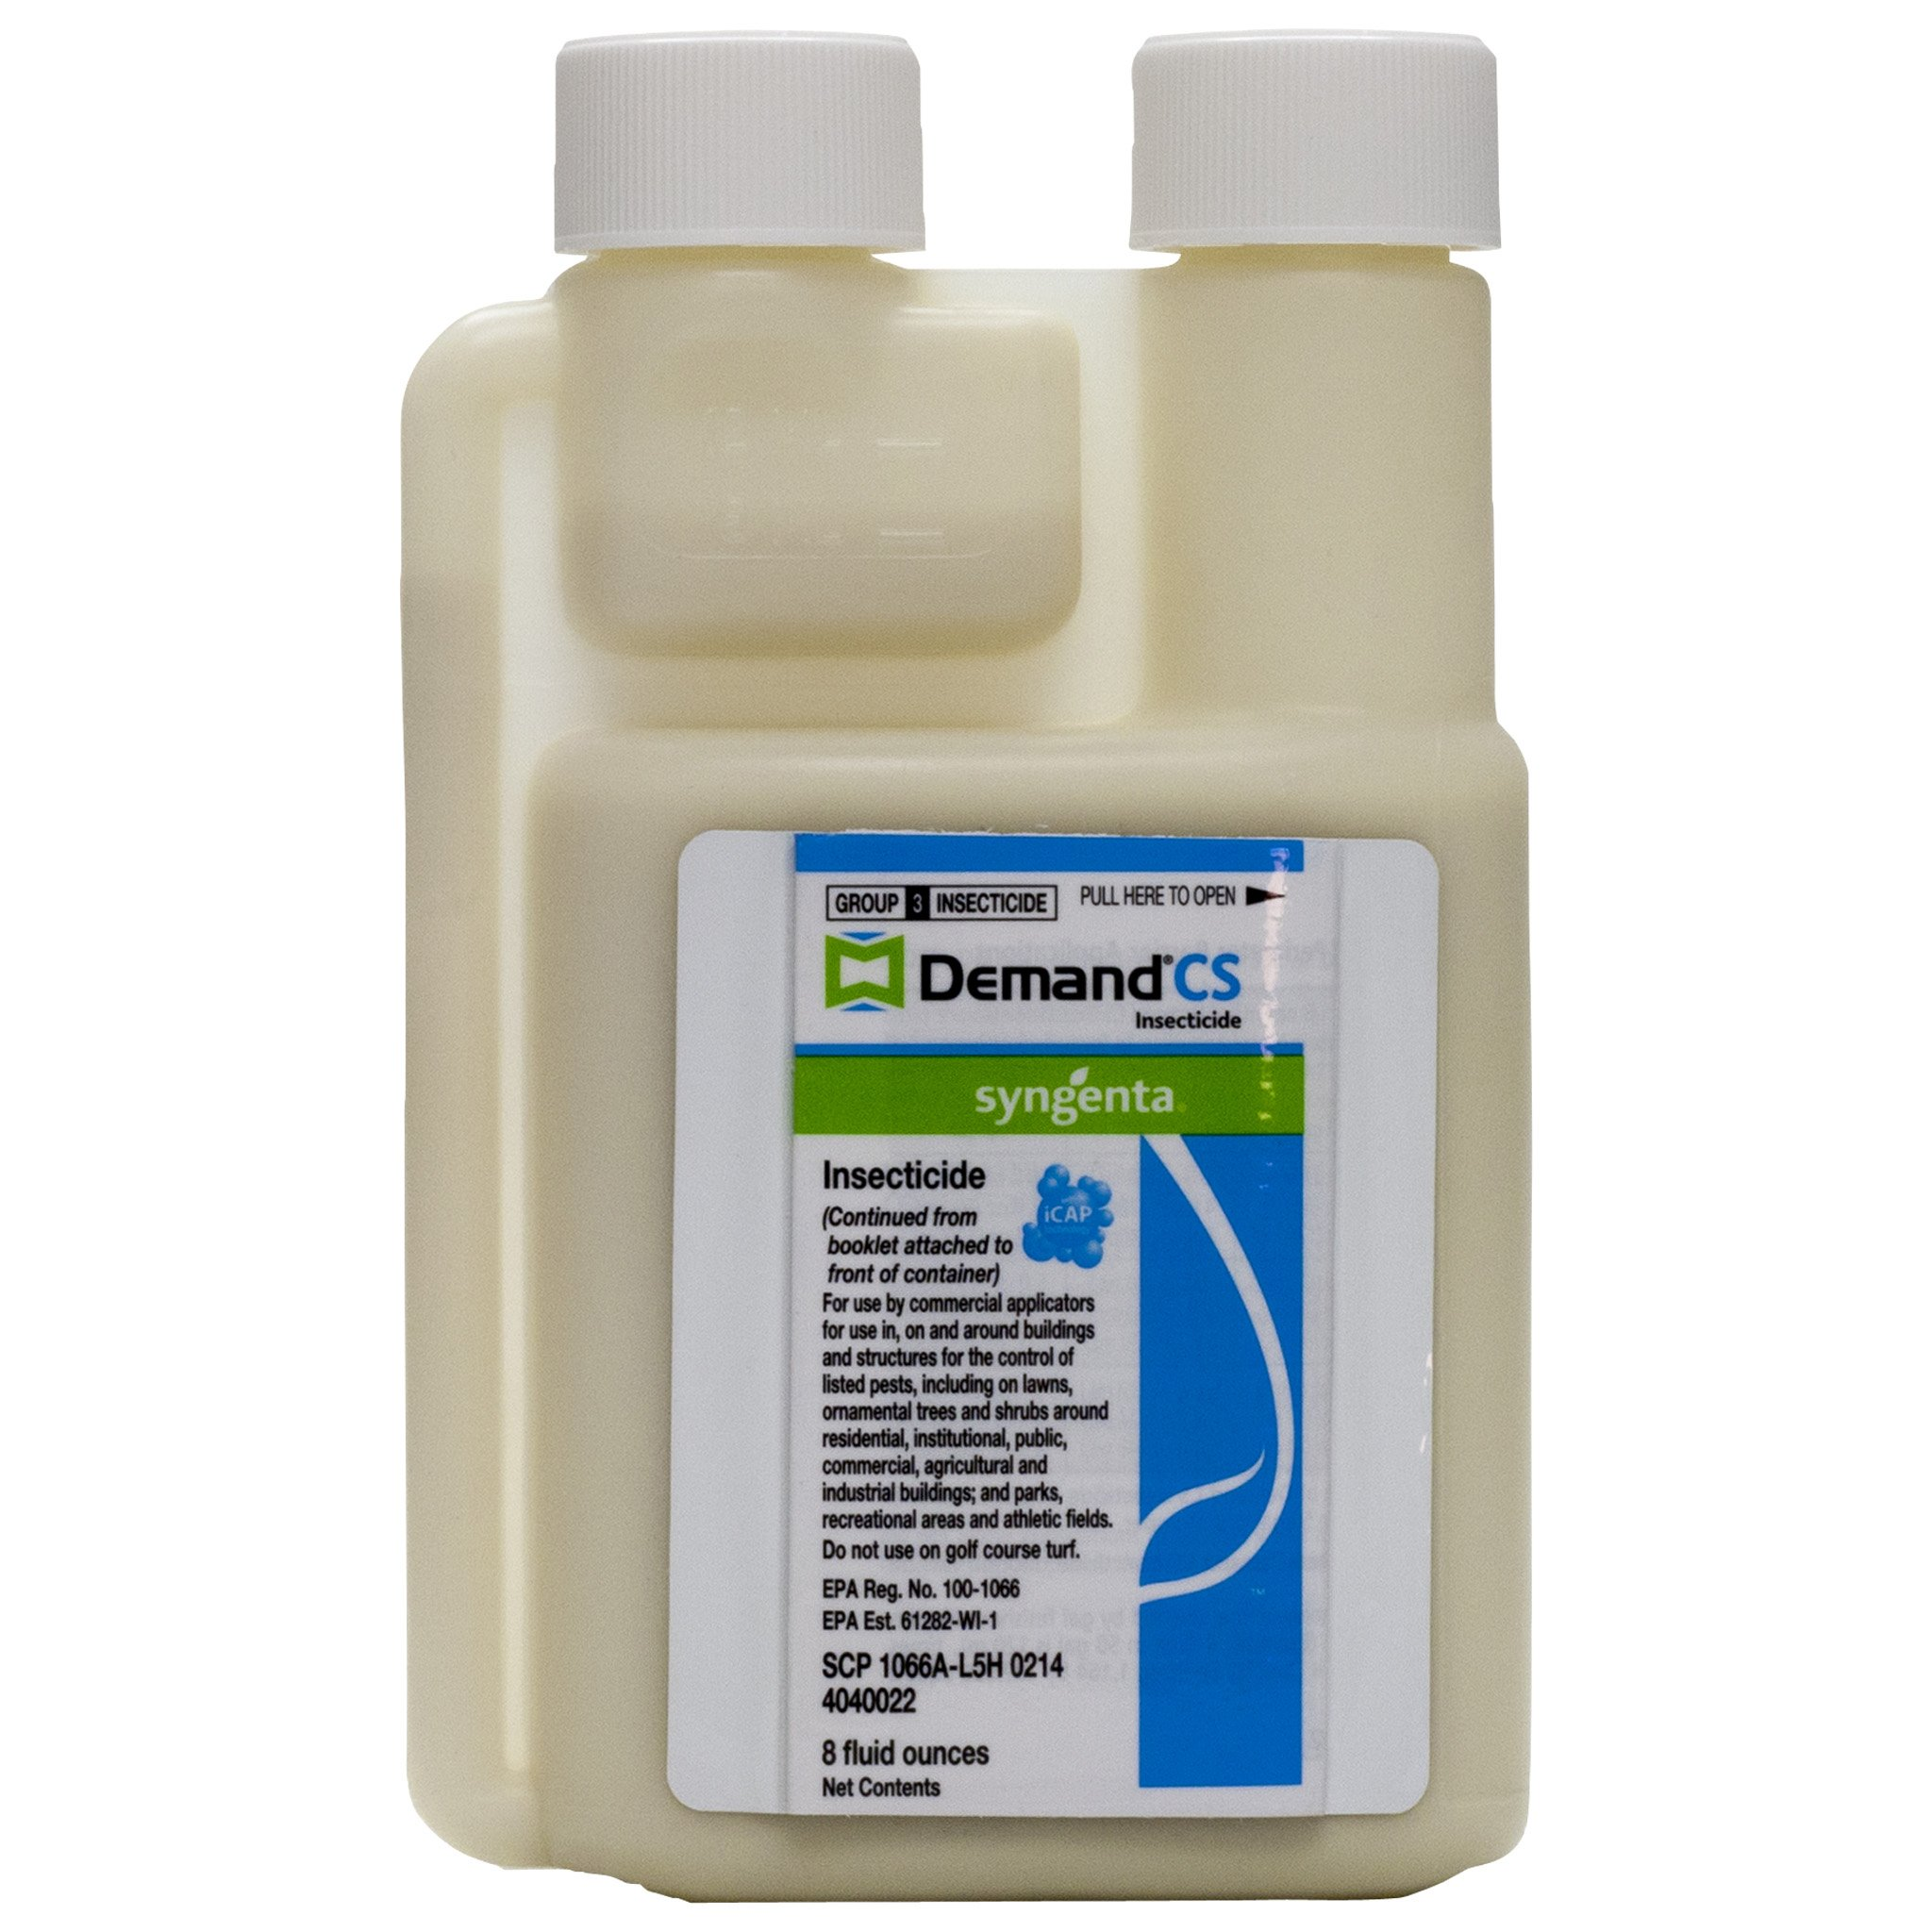 Syngenta - A12690A - Demand CS - Insecticide - 8oz by Syngenta